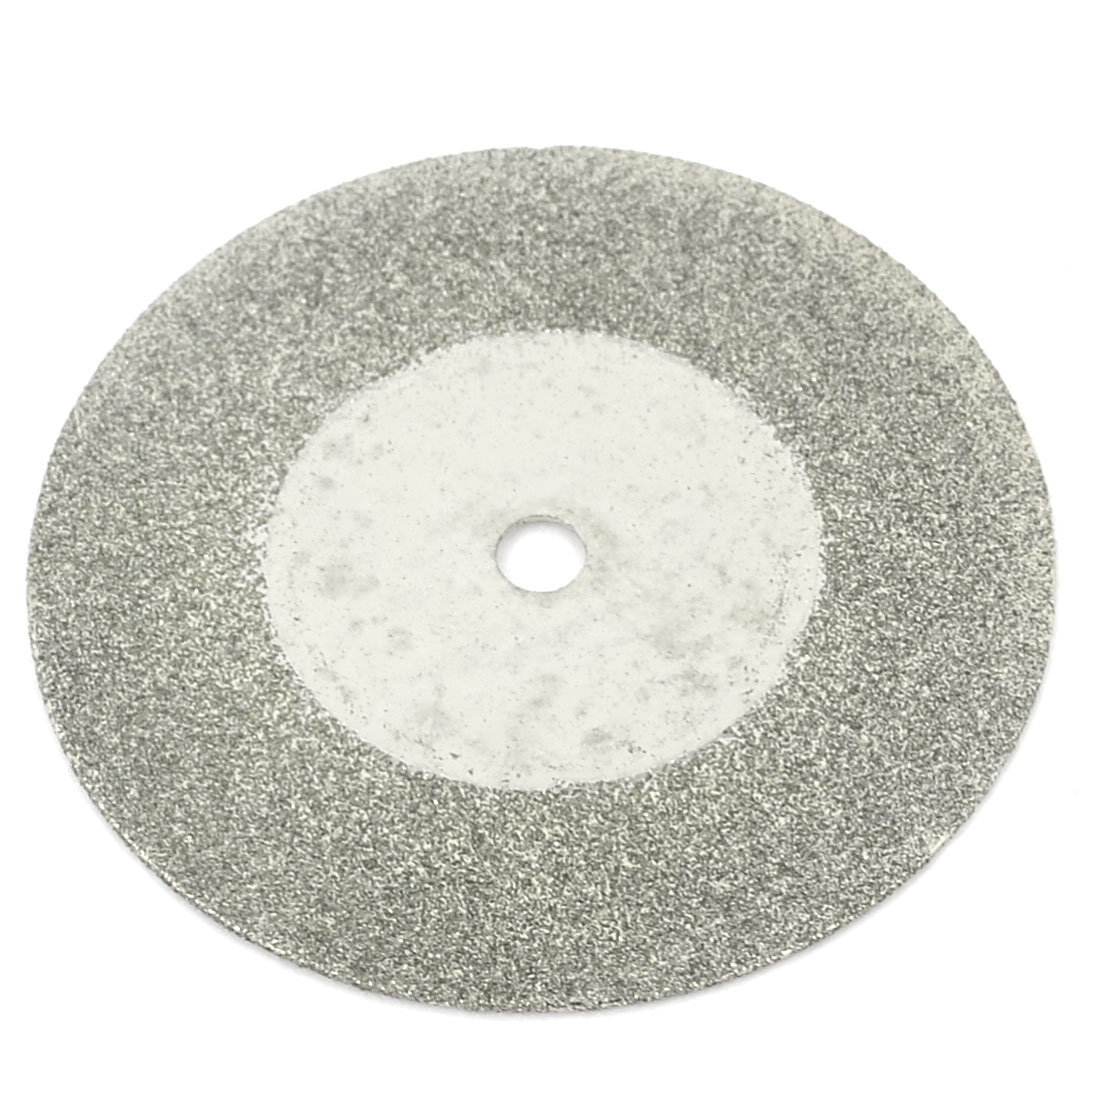 Silver Tone 35mm Dia Diamond Coated Glass Grinding Cutting Cut-off Wheel Disc